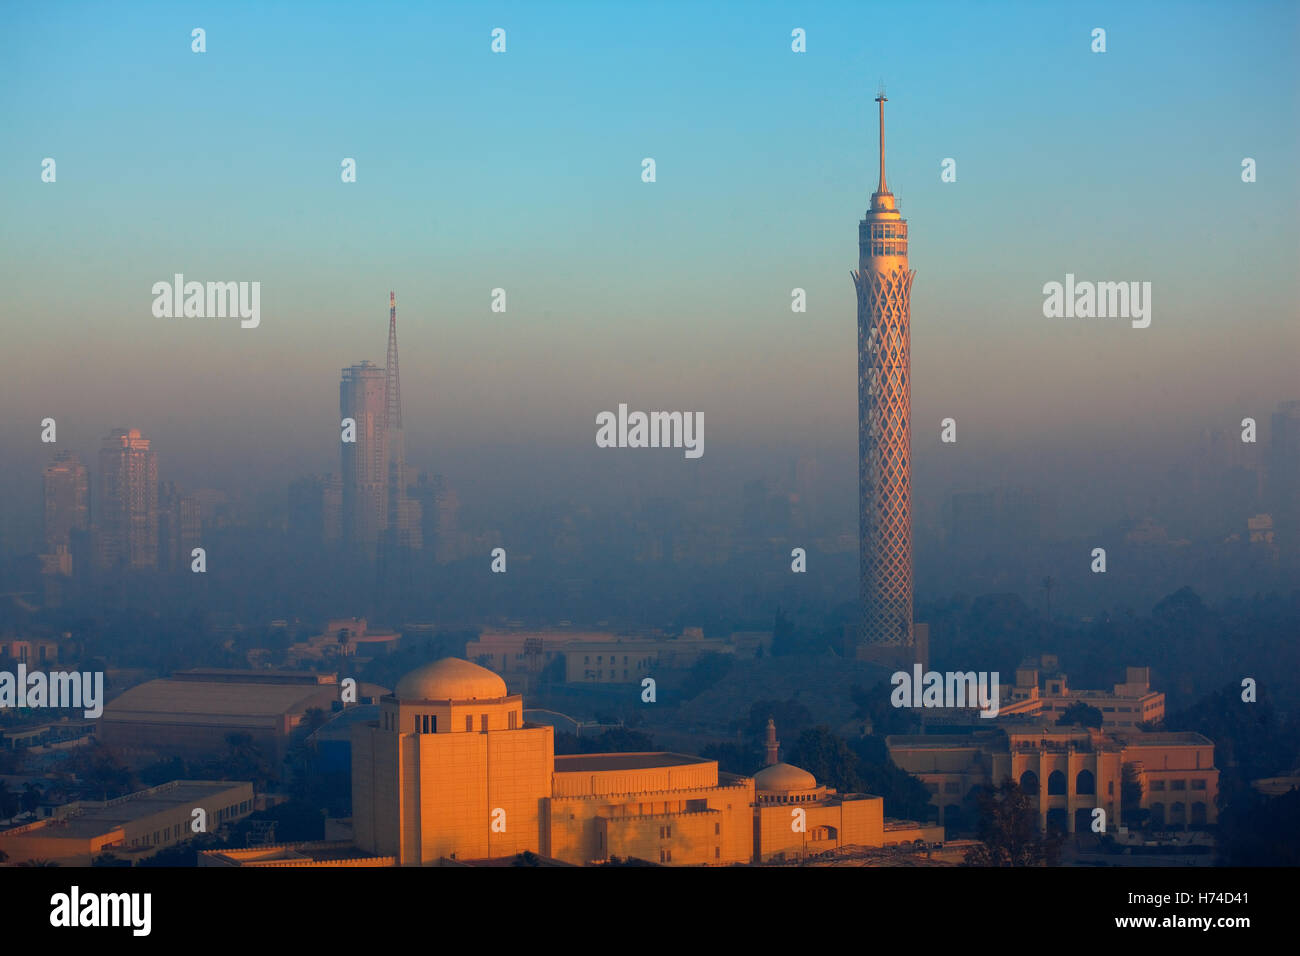 La tour de télévision et de forte pollution au Caire, Egypte Photo Stock